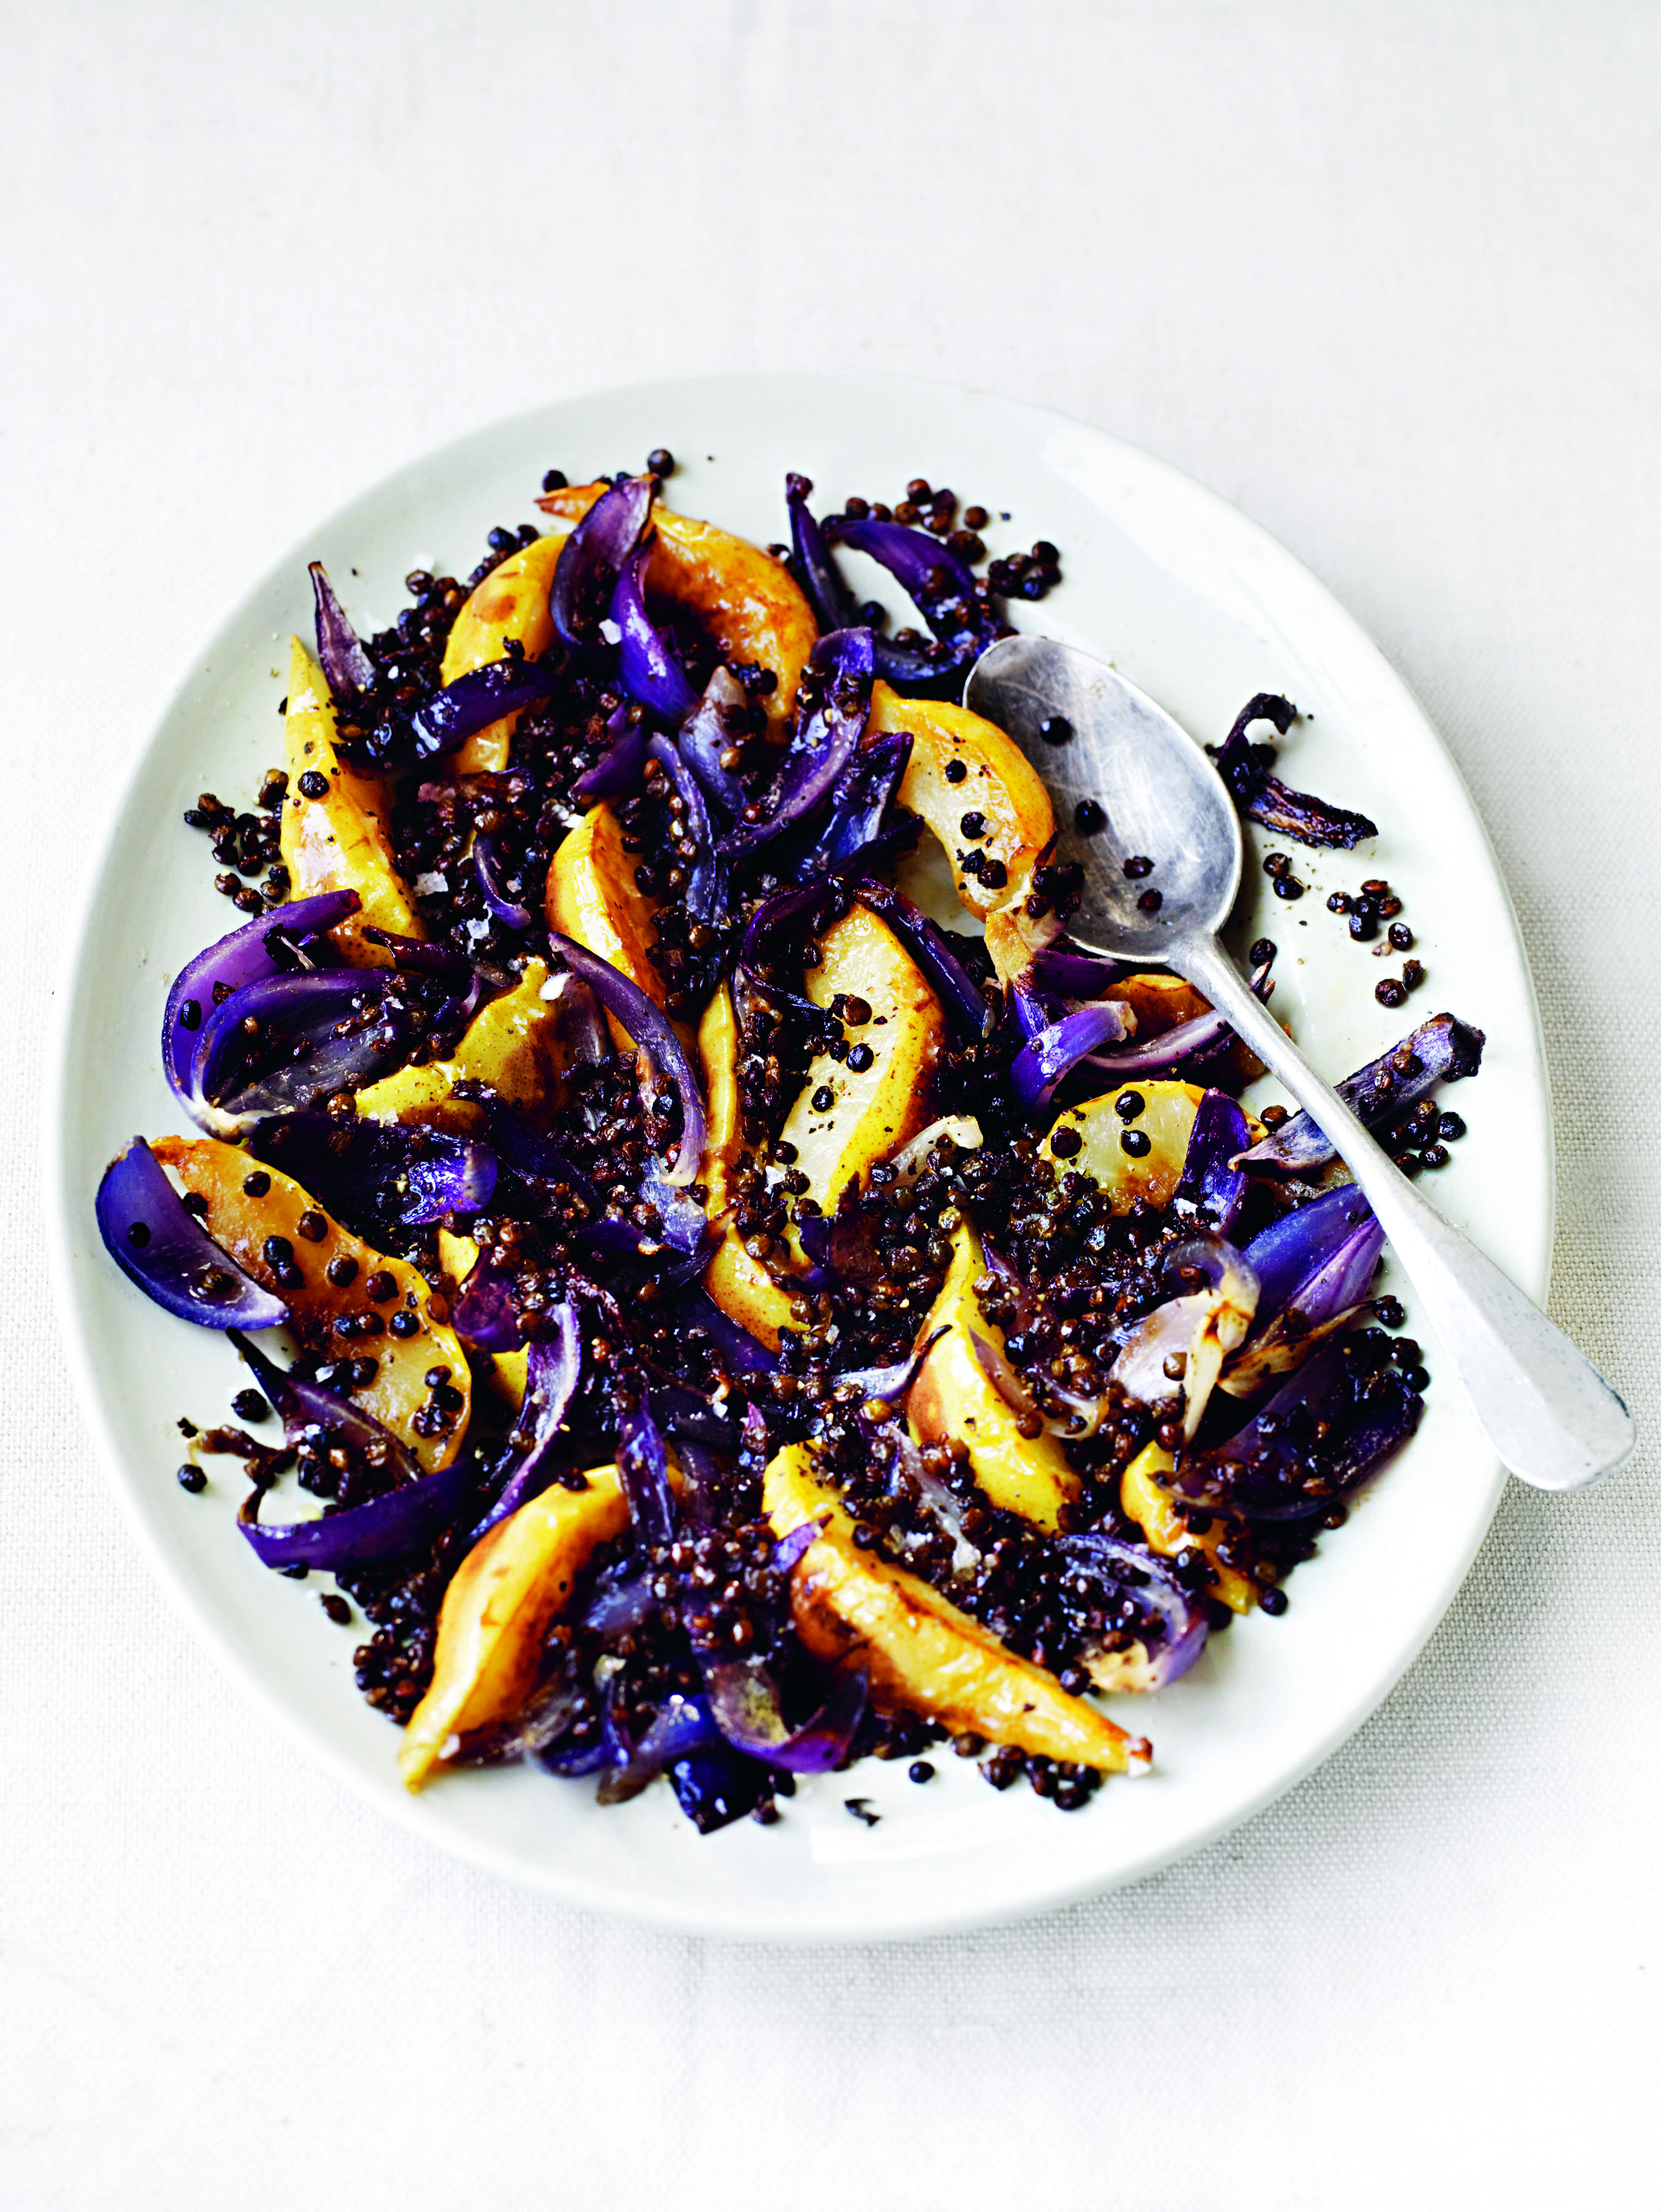 Fried Pears With Roasted Red Onions and Crisped Puy Lentils